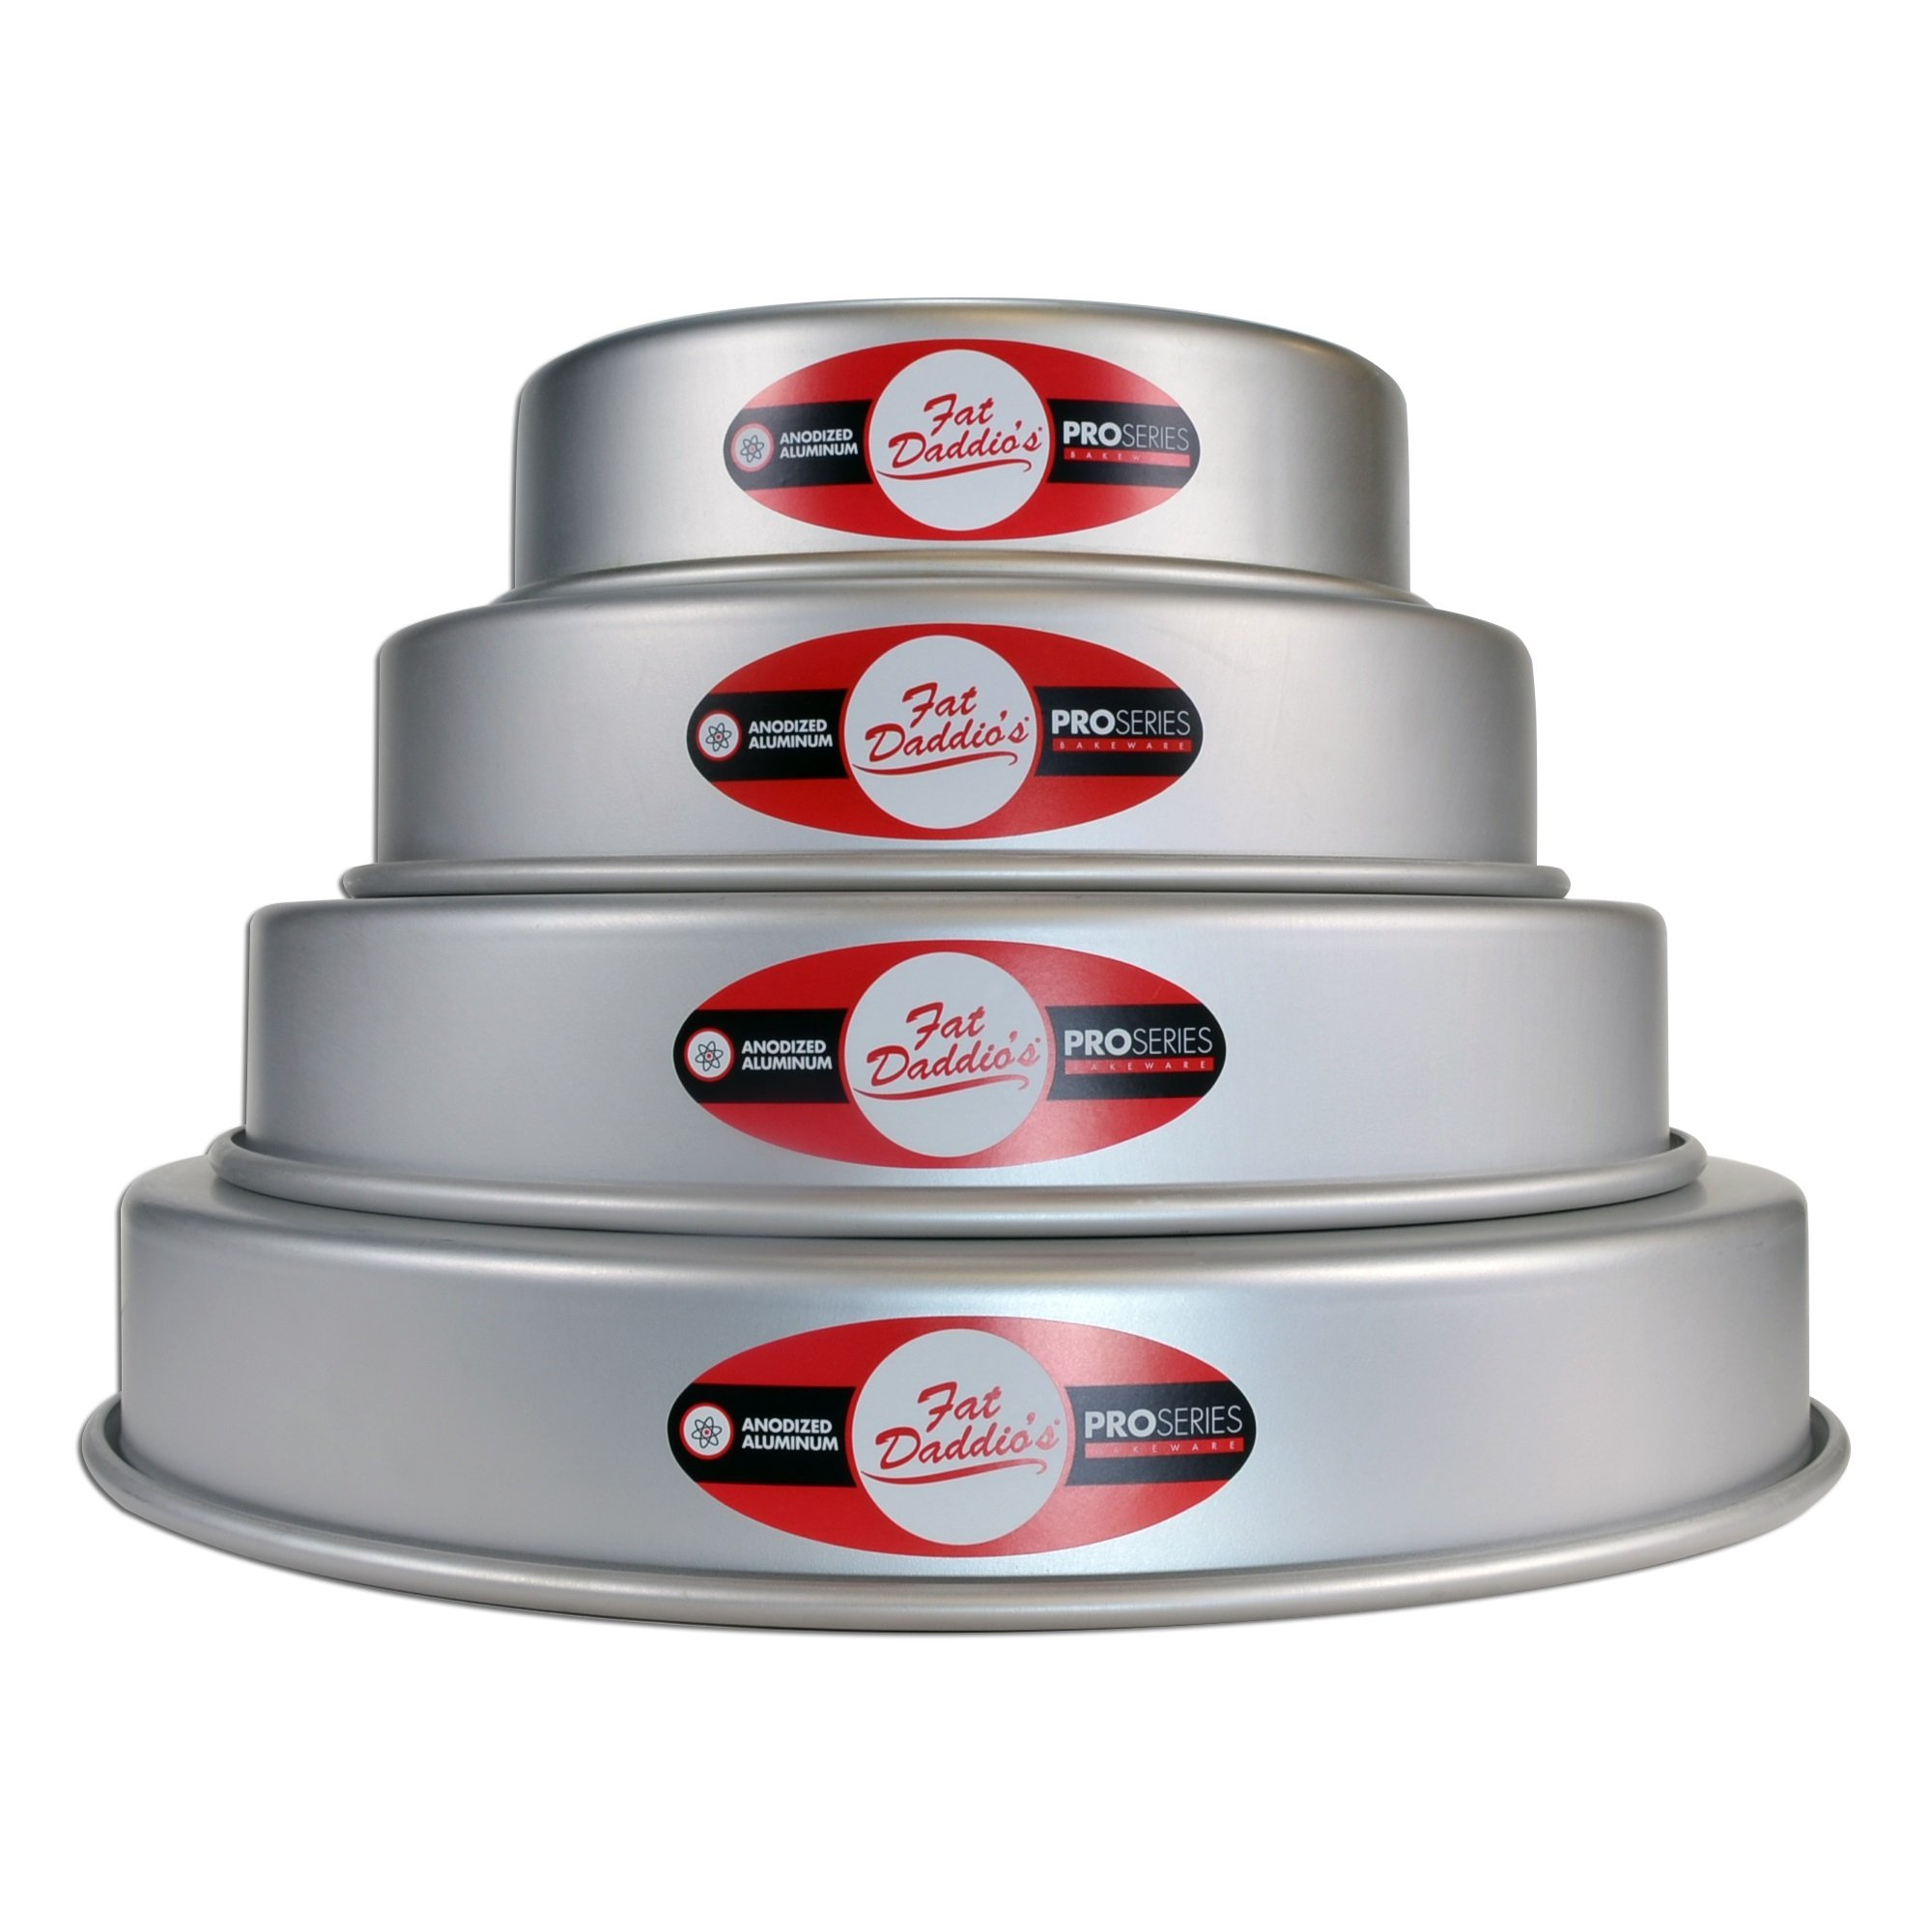 Fat Daddios Fat Daddio's 4 Tier 6'', 8'', 10'' and 12'' Round Pan Set